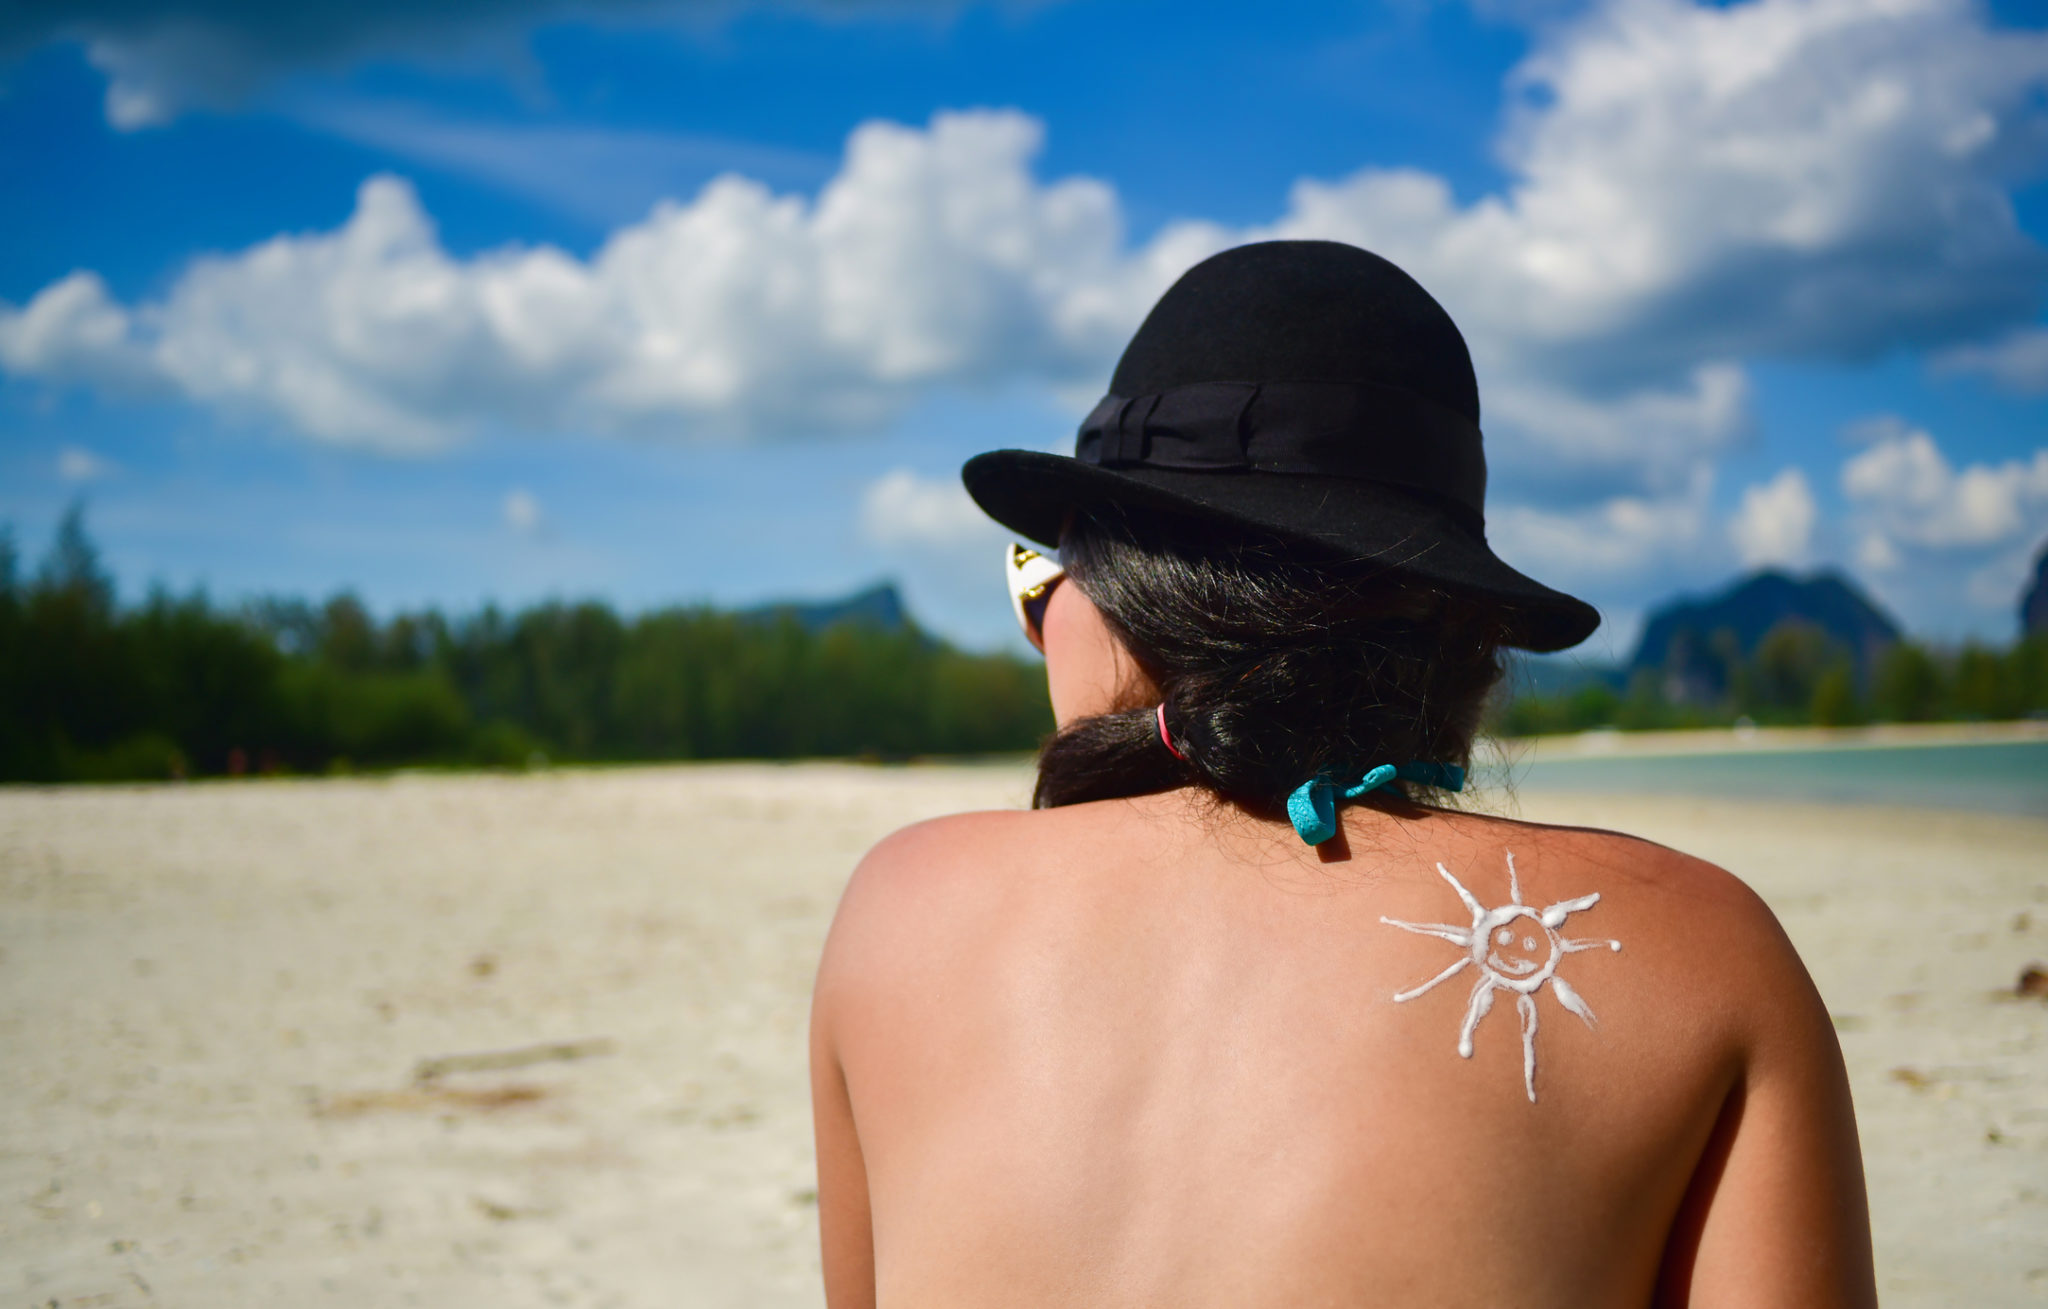 Asian woman traveler using skincare sunblock cream for sun protection in summer travel beach lifestyle